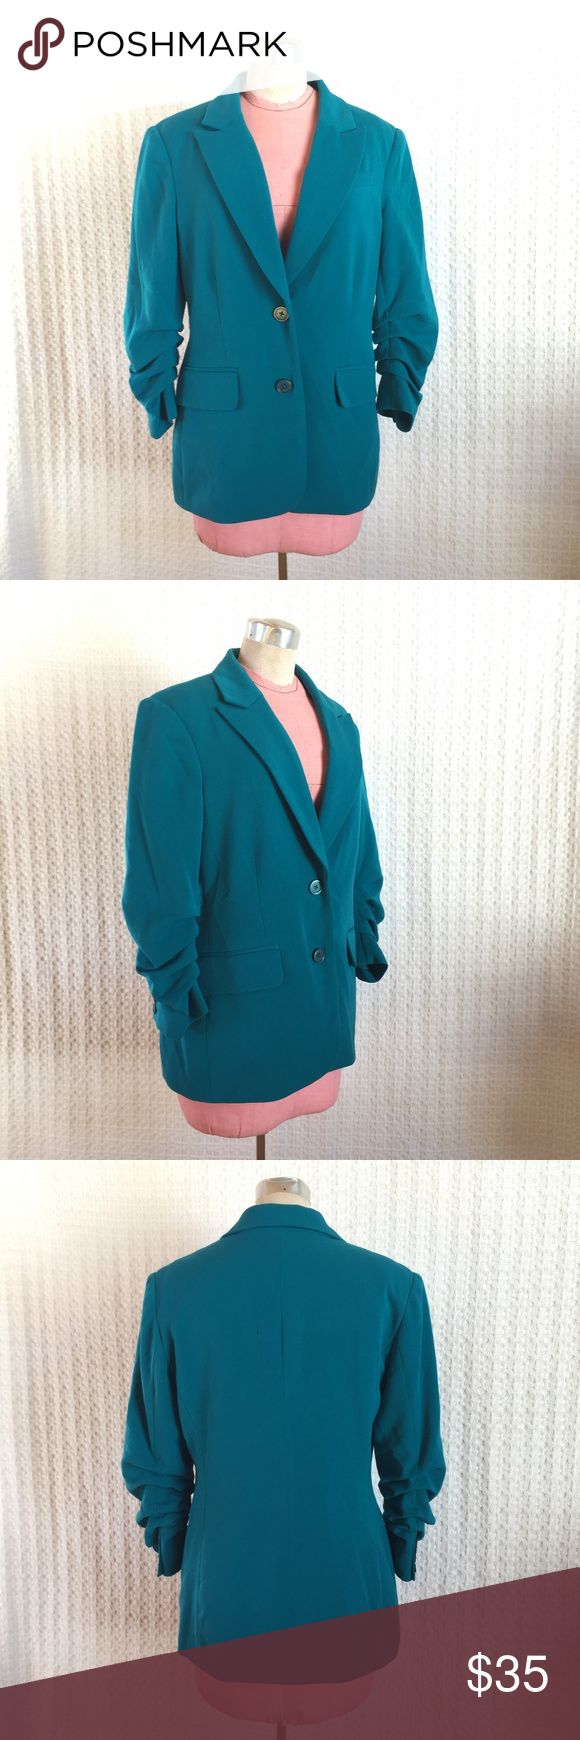 Michael by Michael Kors Turquoise Blazer Gently used turquoise blazer from Michael by Michael Kors; this is a great blazer with ruched sleeves, great tailoring, and double button closure. Does show some piling at the armpits, otherwise in good condition.   Laying Flat Measurements are:  Chest- 19 in Waist- 17.5  in Hips- 19.5  in Overall Length- 27 in MICHAEL Michael Kors Jackets & Coats Blazers